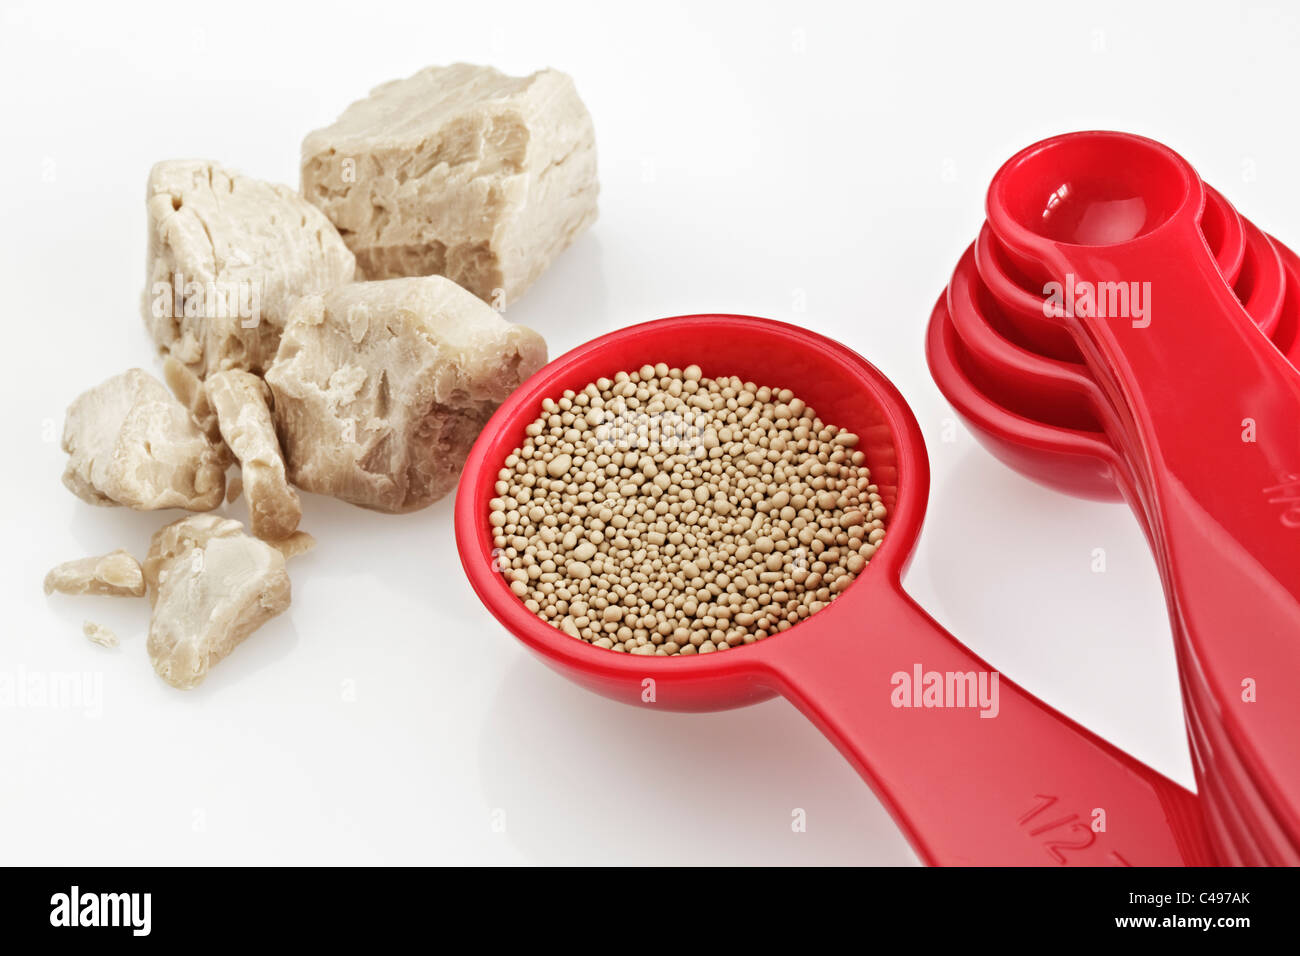 Fresh Yeast and  a Spoon of Dried Yeast - Stock Image